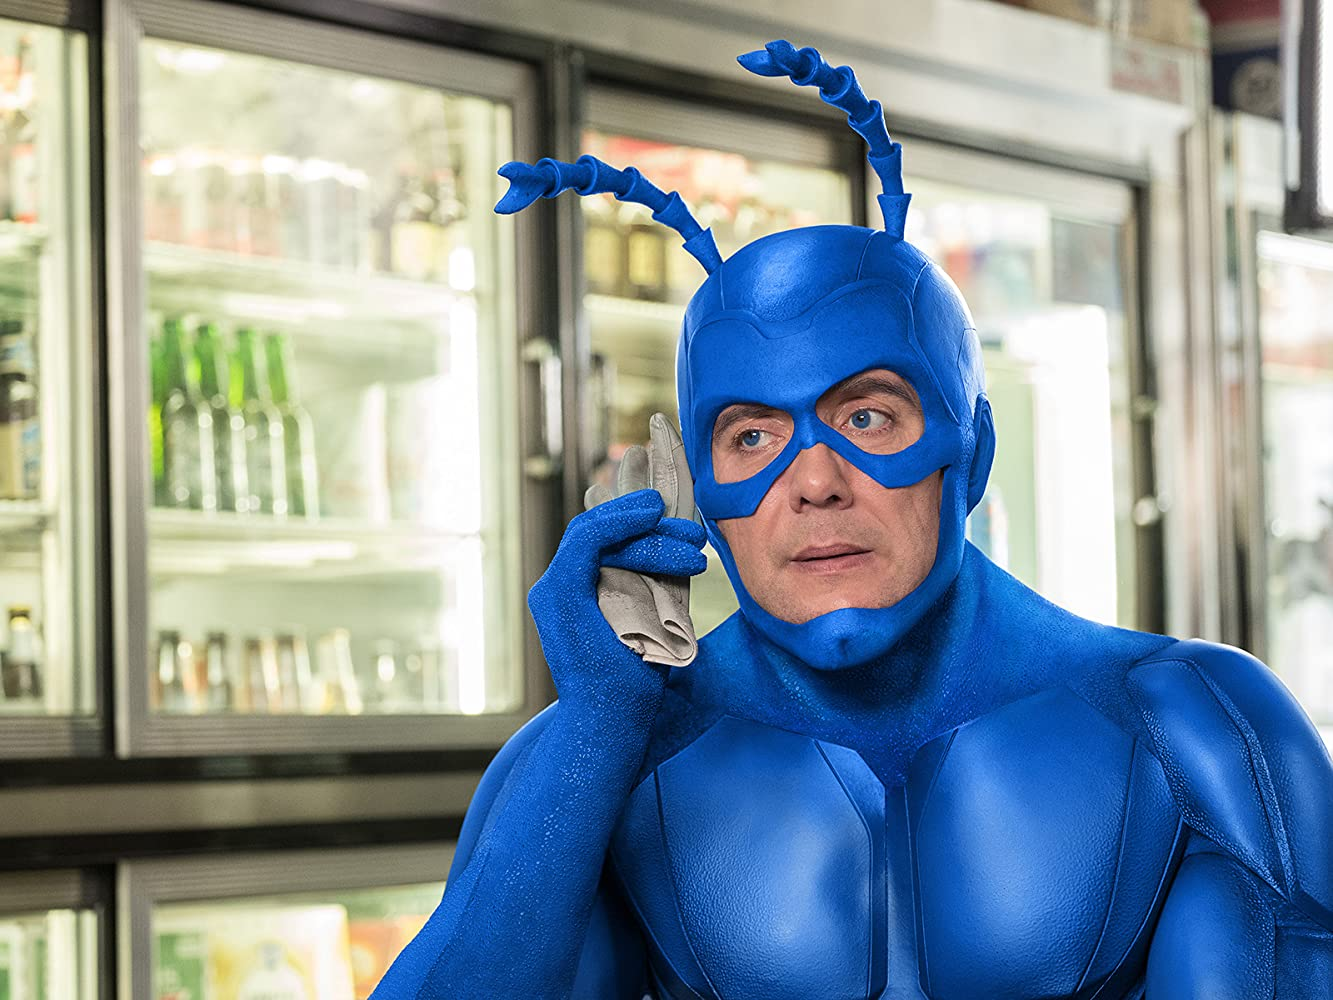 The Tick - Amazon Prime Video